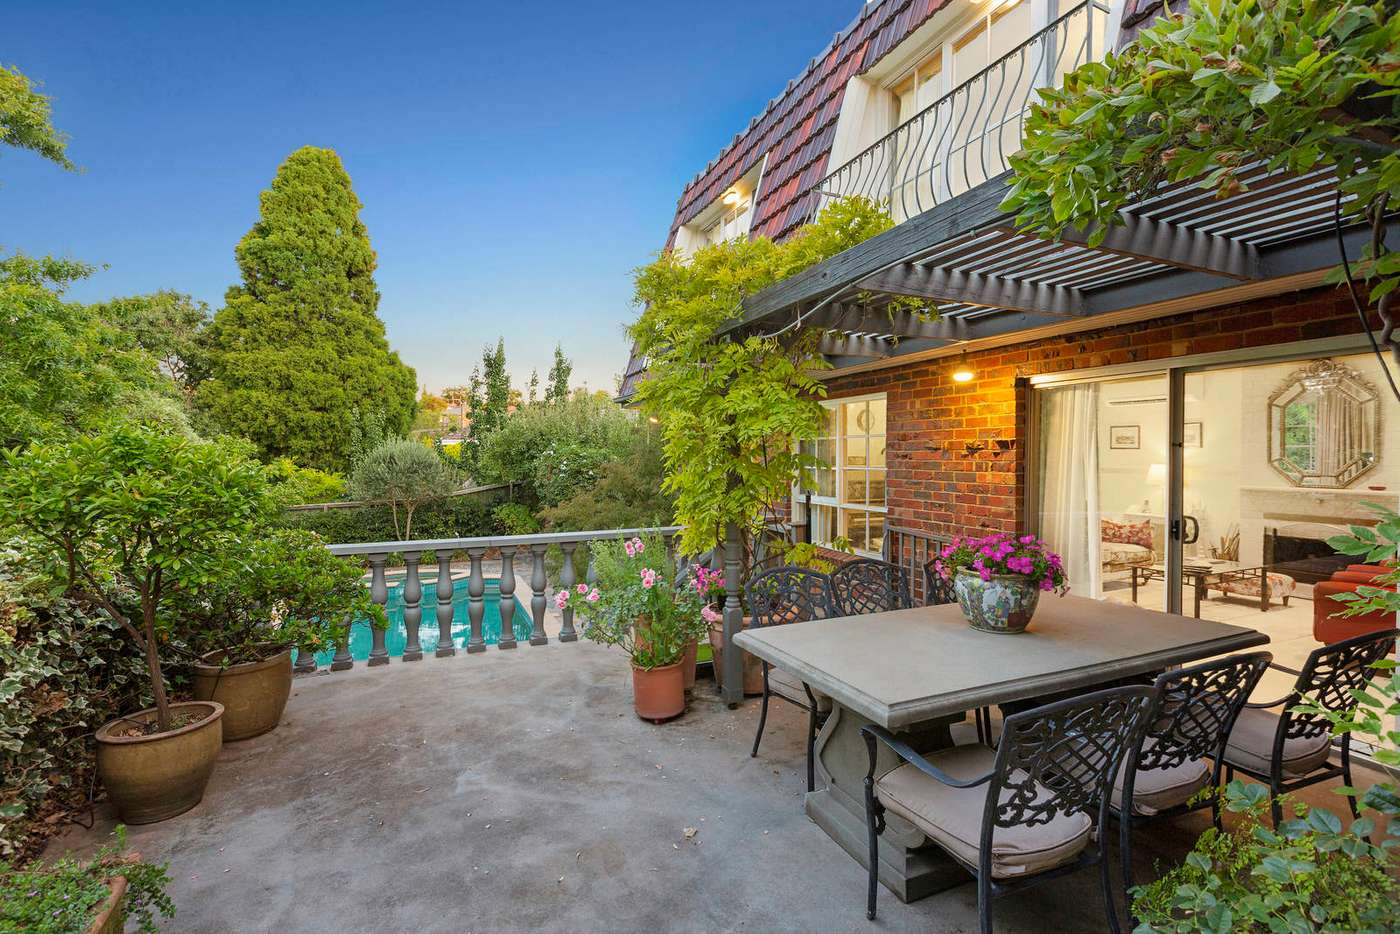 Main view of Homely house listing, 35 Fortuna Avenue, Balwyn North VIC 3104